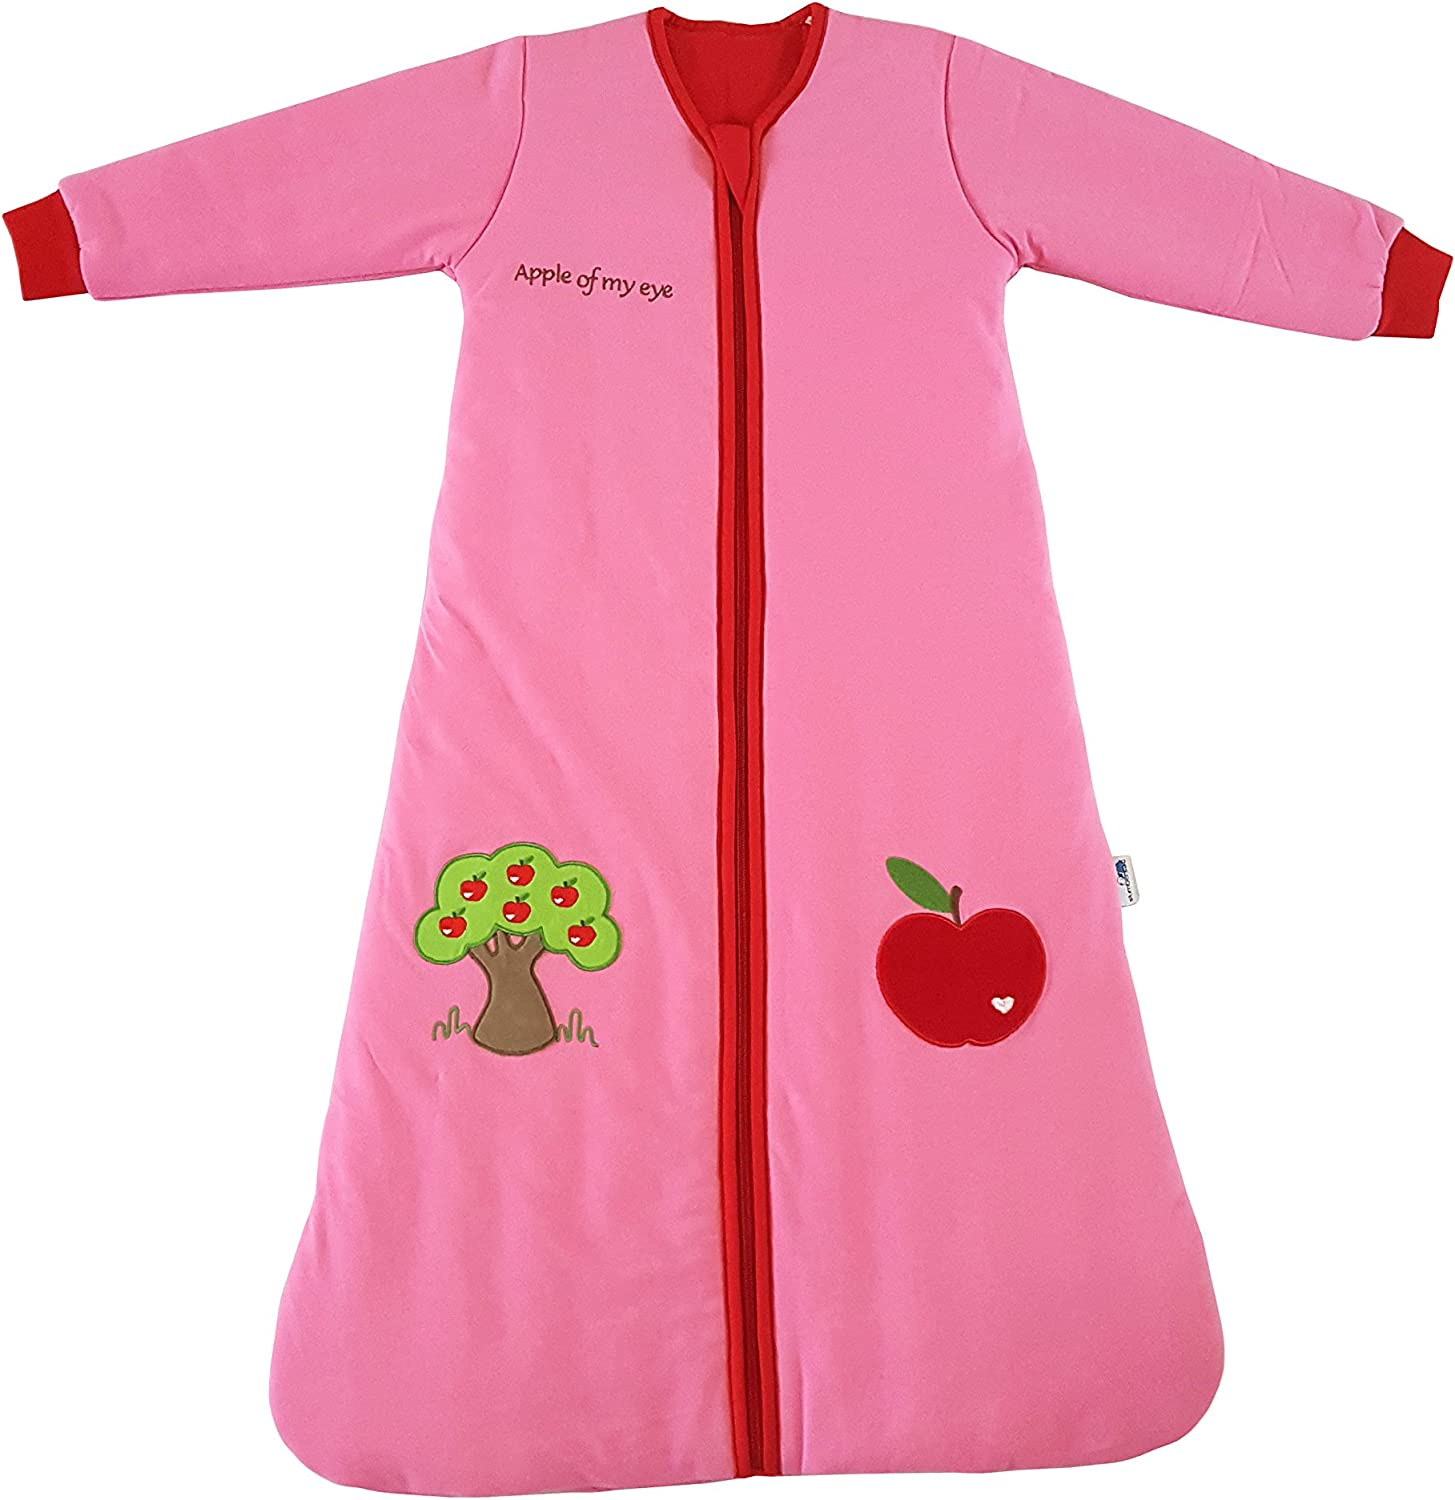 Slumbersac Sleeping Bag with NON REMOVABLE Long Sleeves 3.5 TogRed Apple  06 months 27 inch